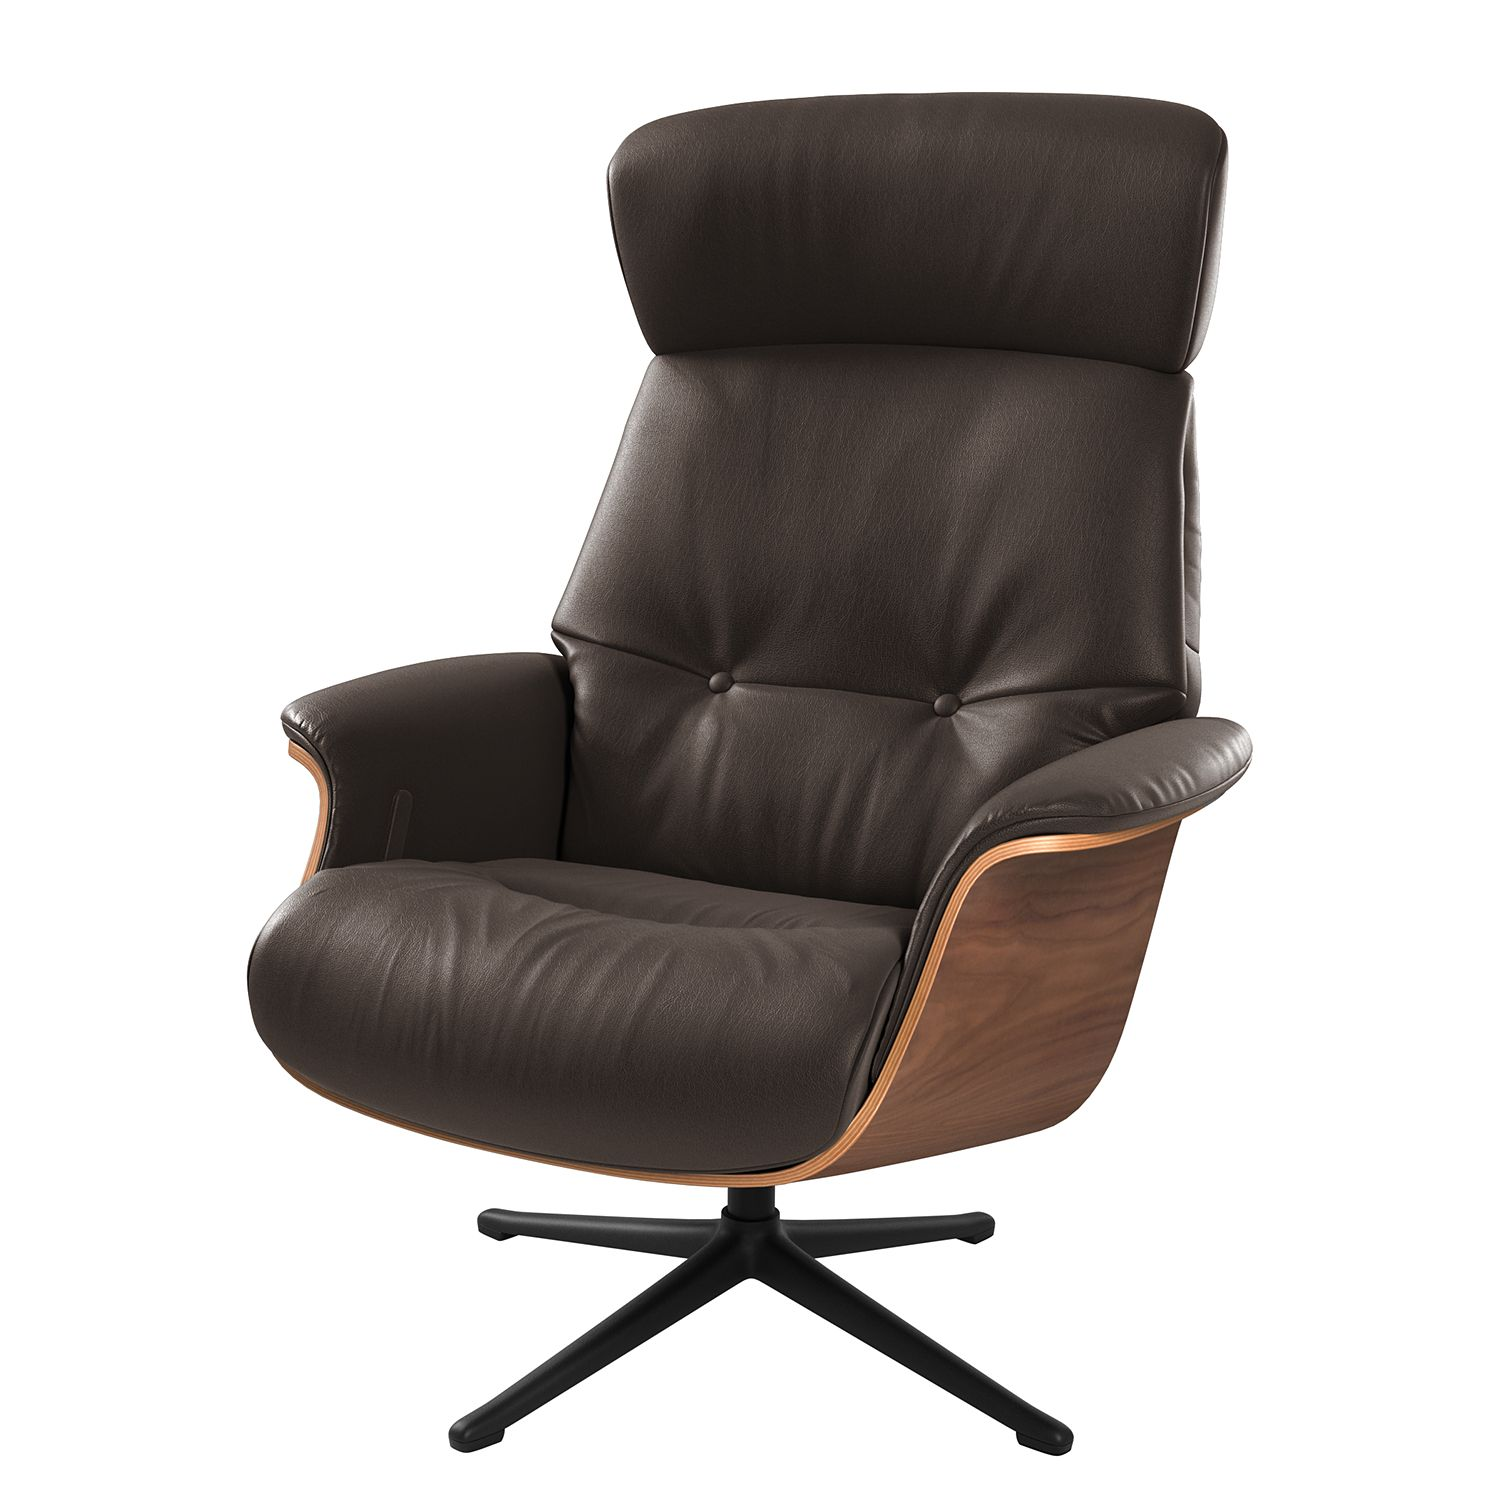 Fauteuil relax Anderson I